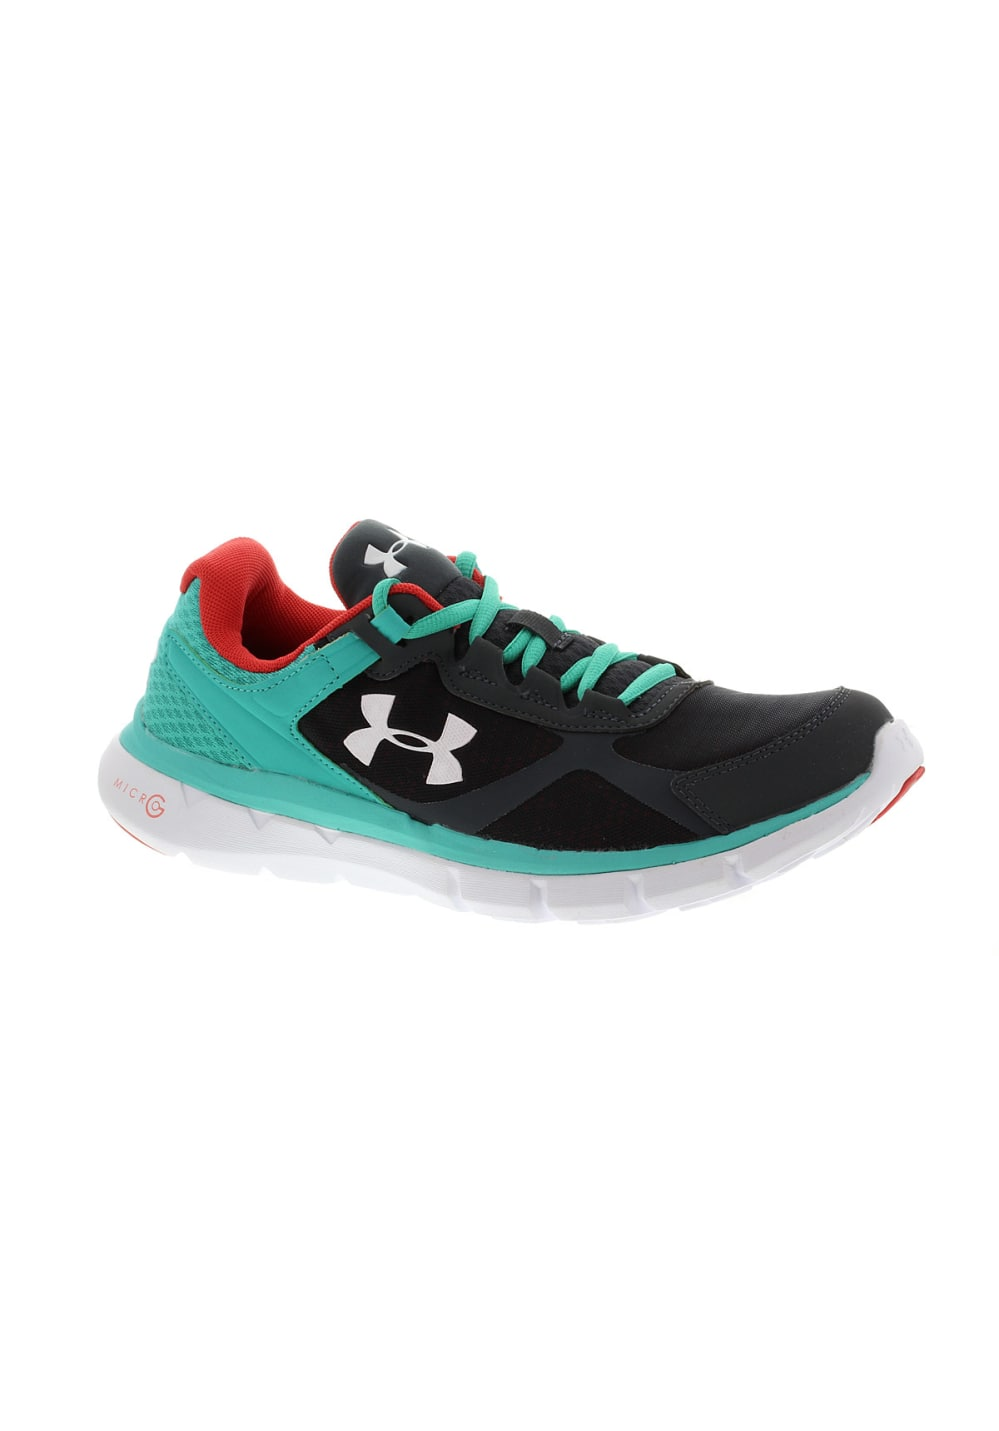 Under Armour Micro G Velocity RN - Running shoes for Women - Grey ... 958574e4ae2c